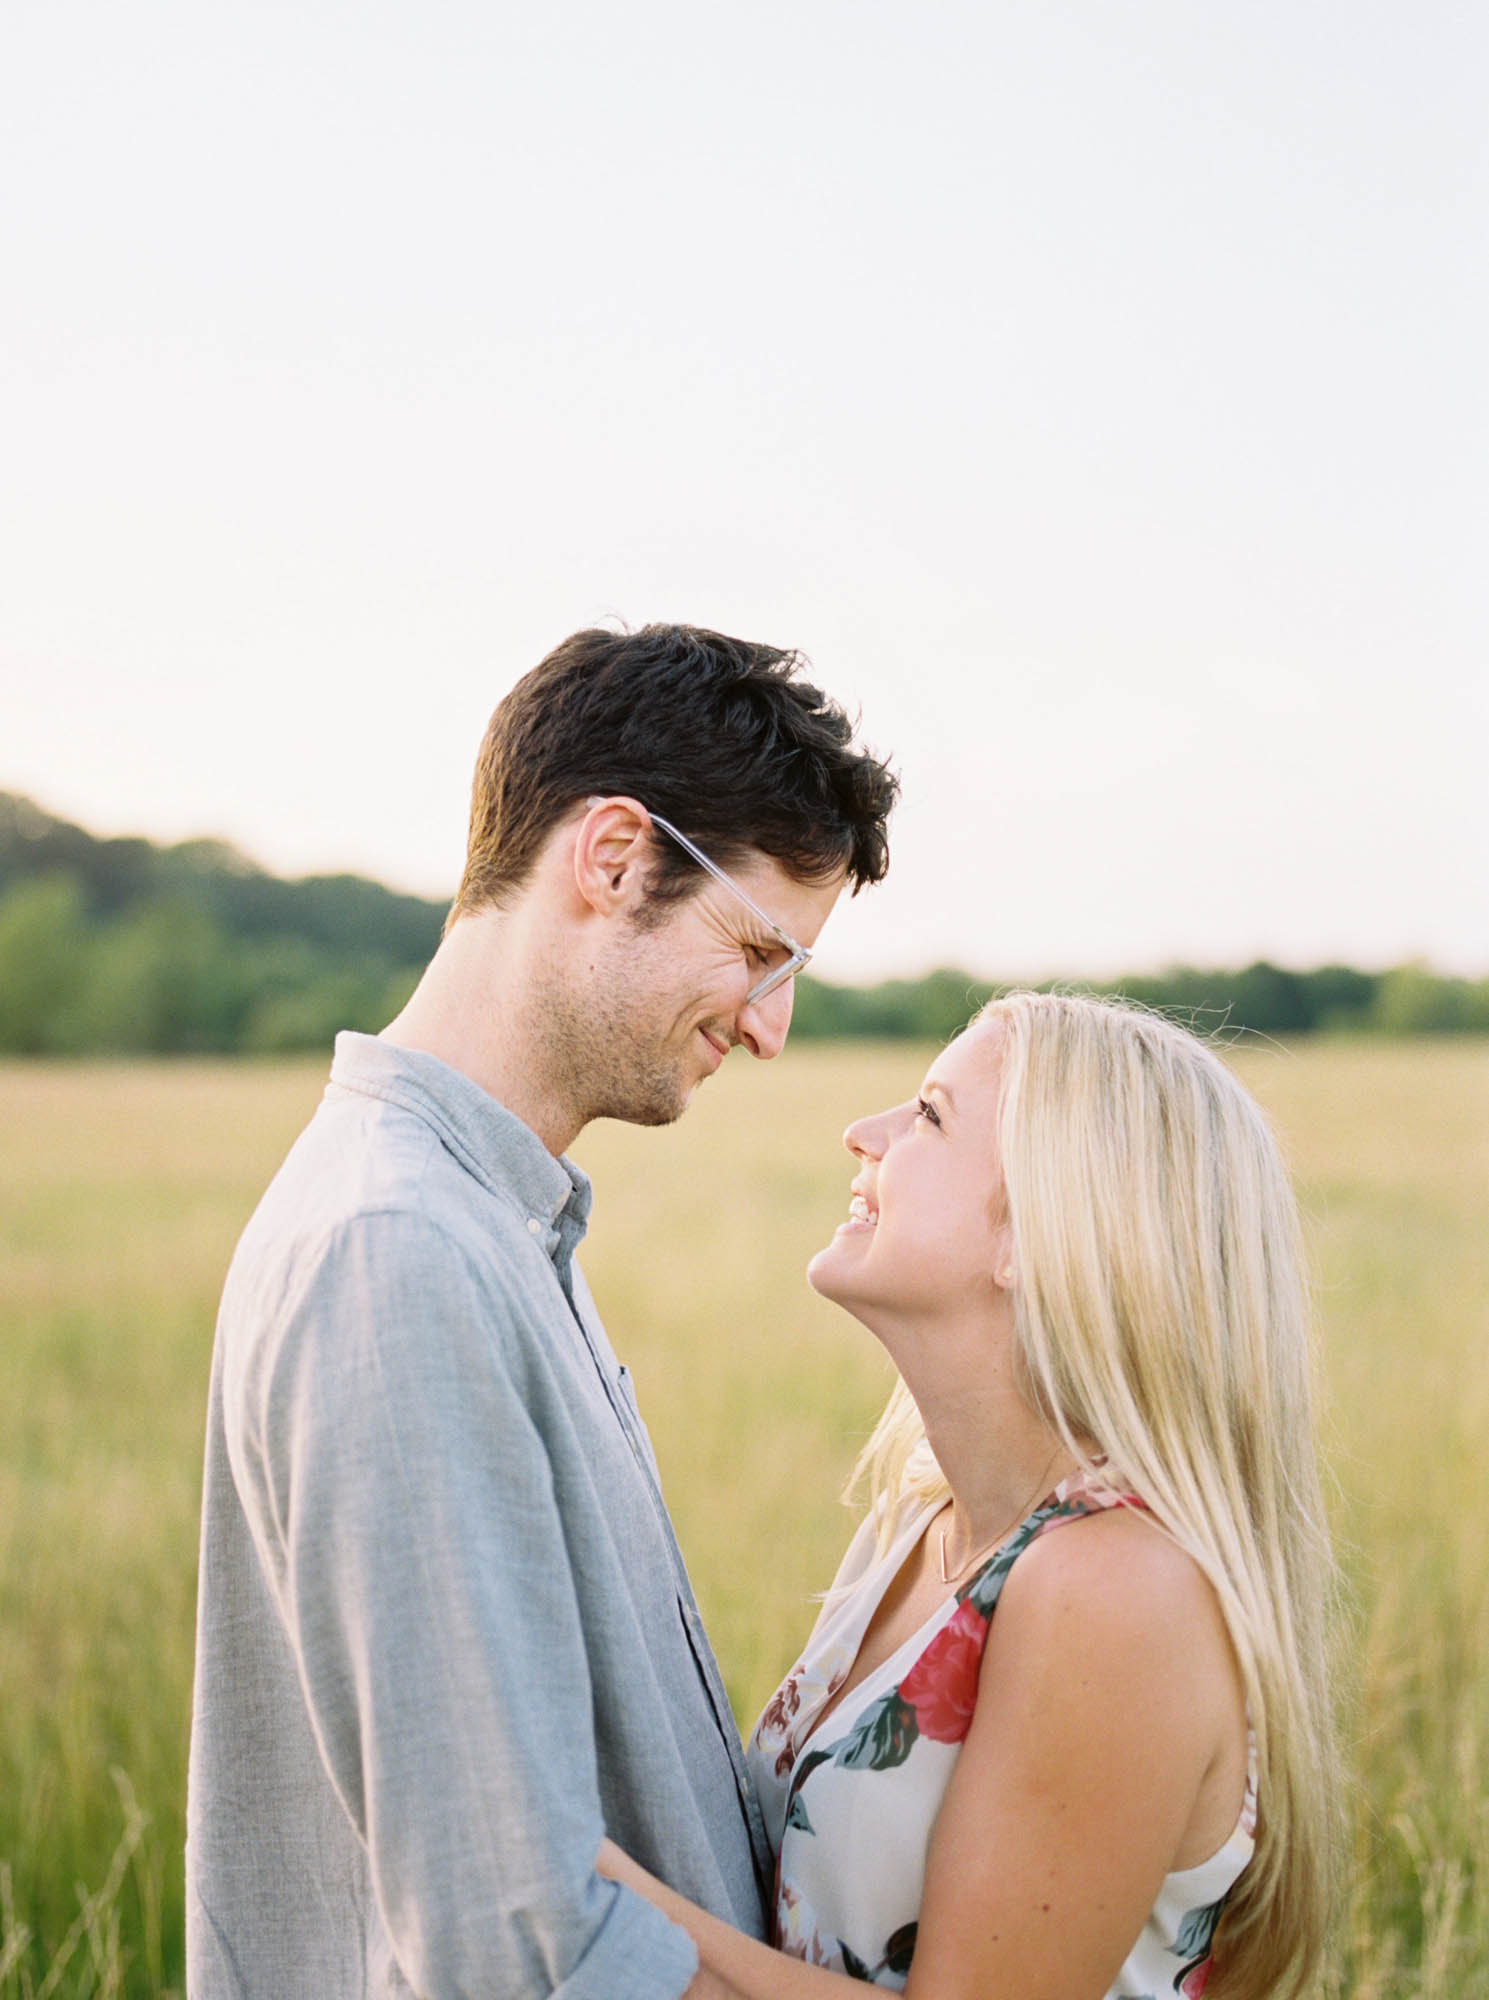 Alyssa Joy Photography - Nashville, TN Wedding & Engagement Photographer